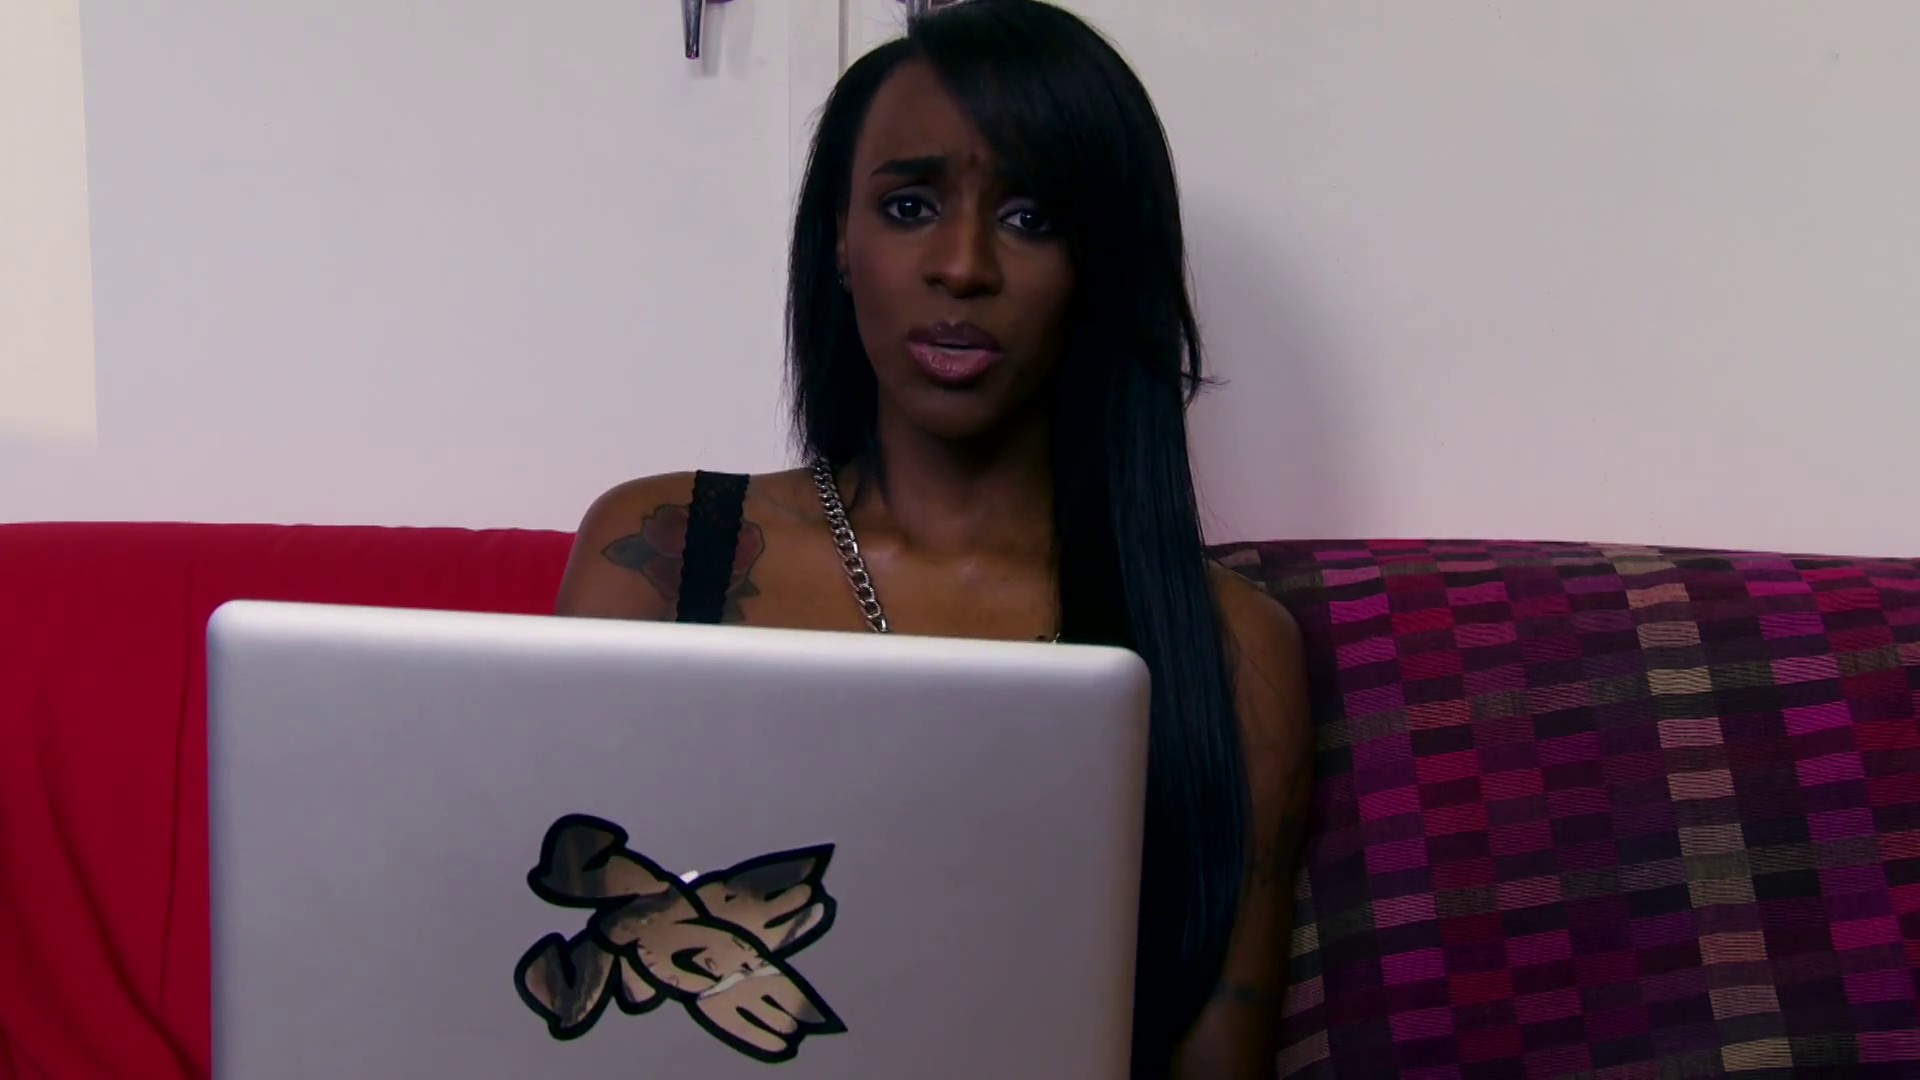 Angel Haze on the Illuminati, Frank Ocean and Nicki Minaj